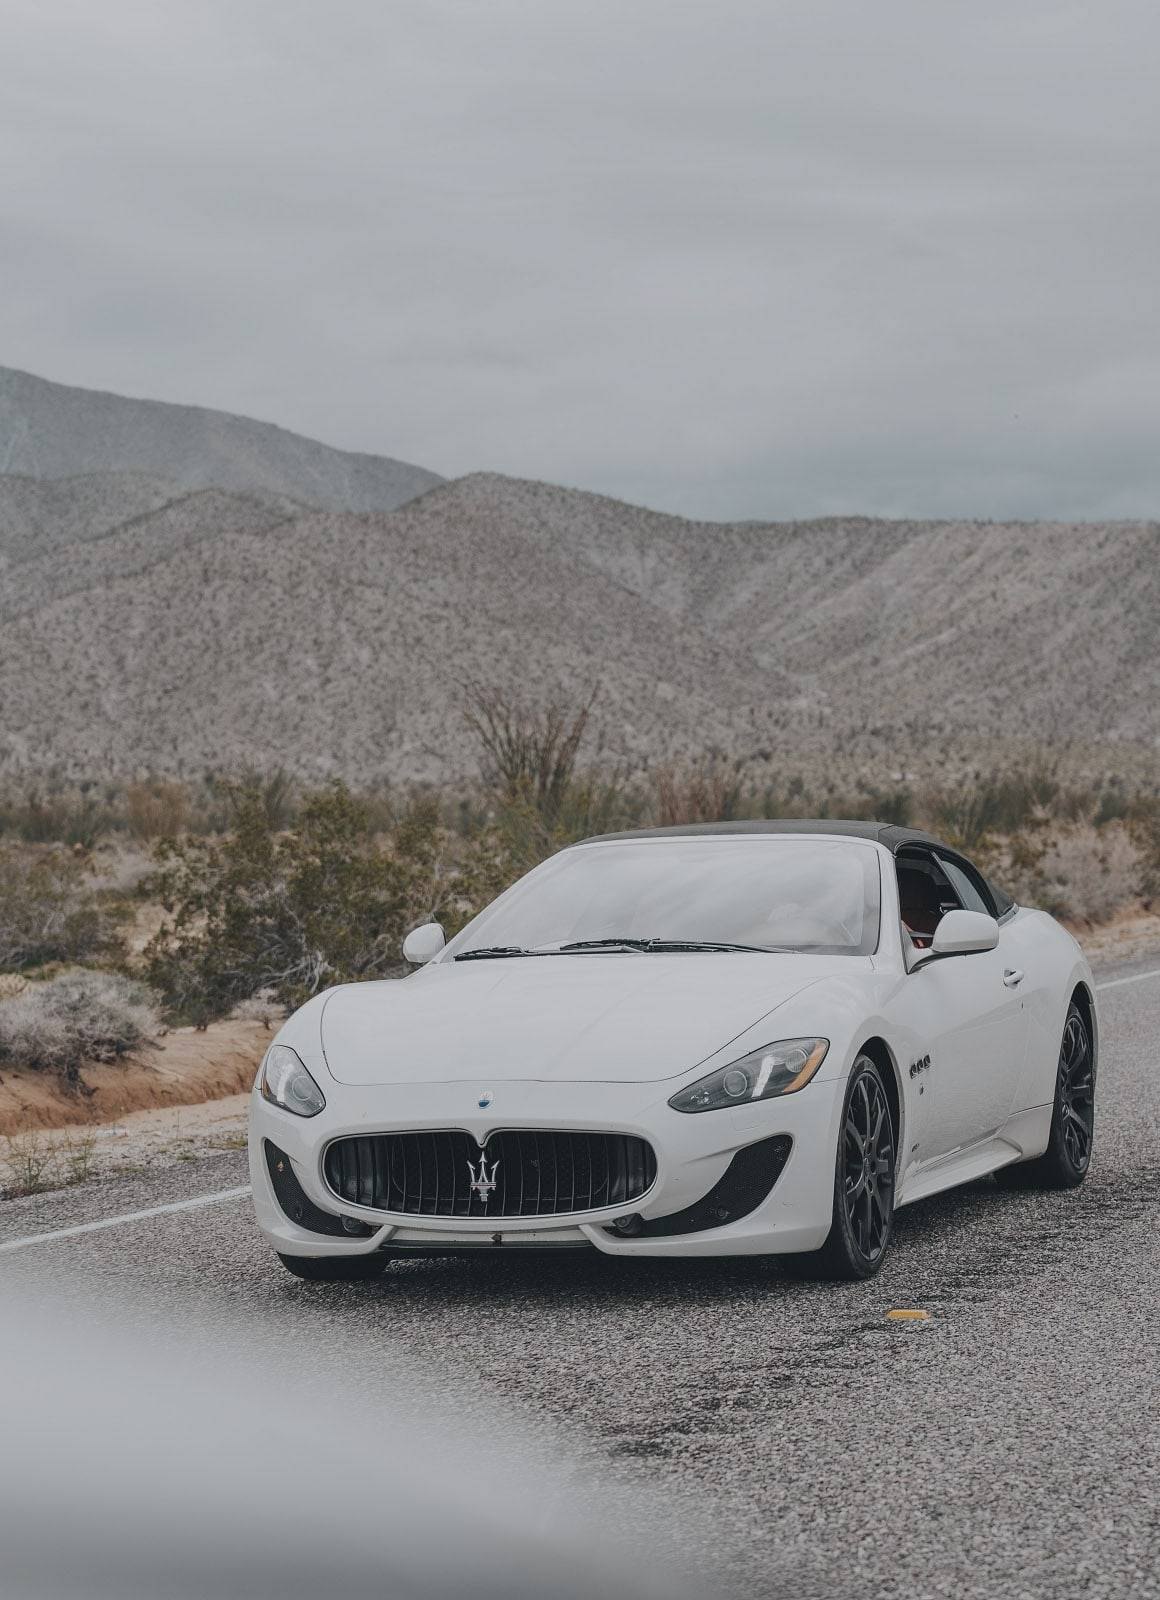 Get an instant Maserati car insurance quote online